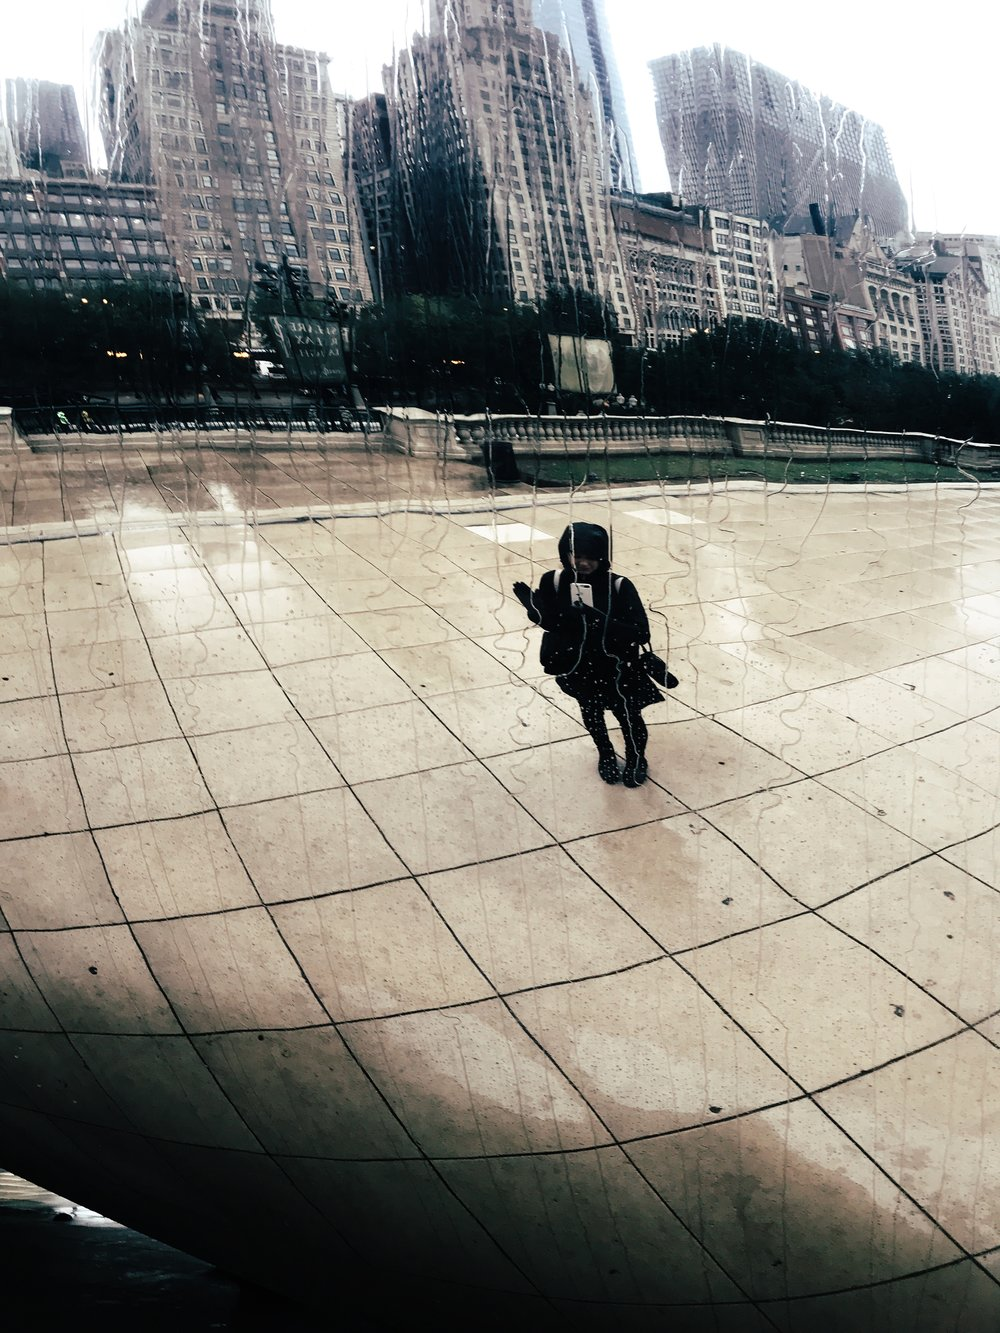 Somewhere buried under a rain jacket at Cloud Gate